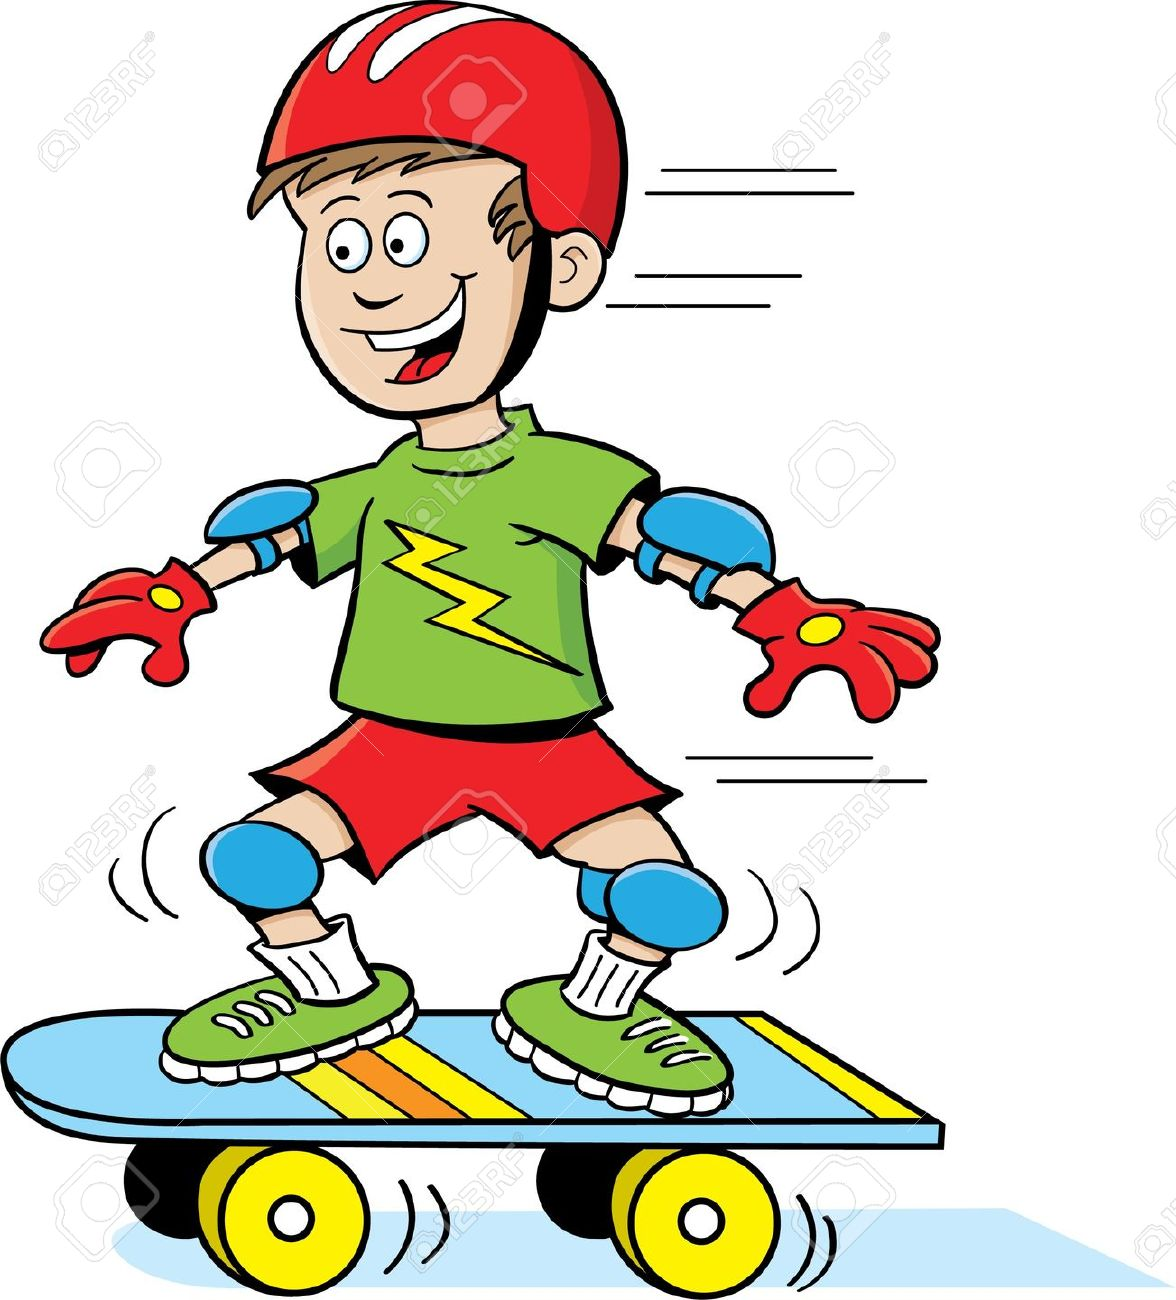 figure skating clipart at getdrawings com free for personal use rh getdrawings com skateboarding clipart free skateboard clip art borders png free